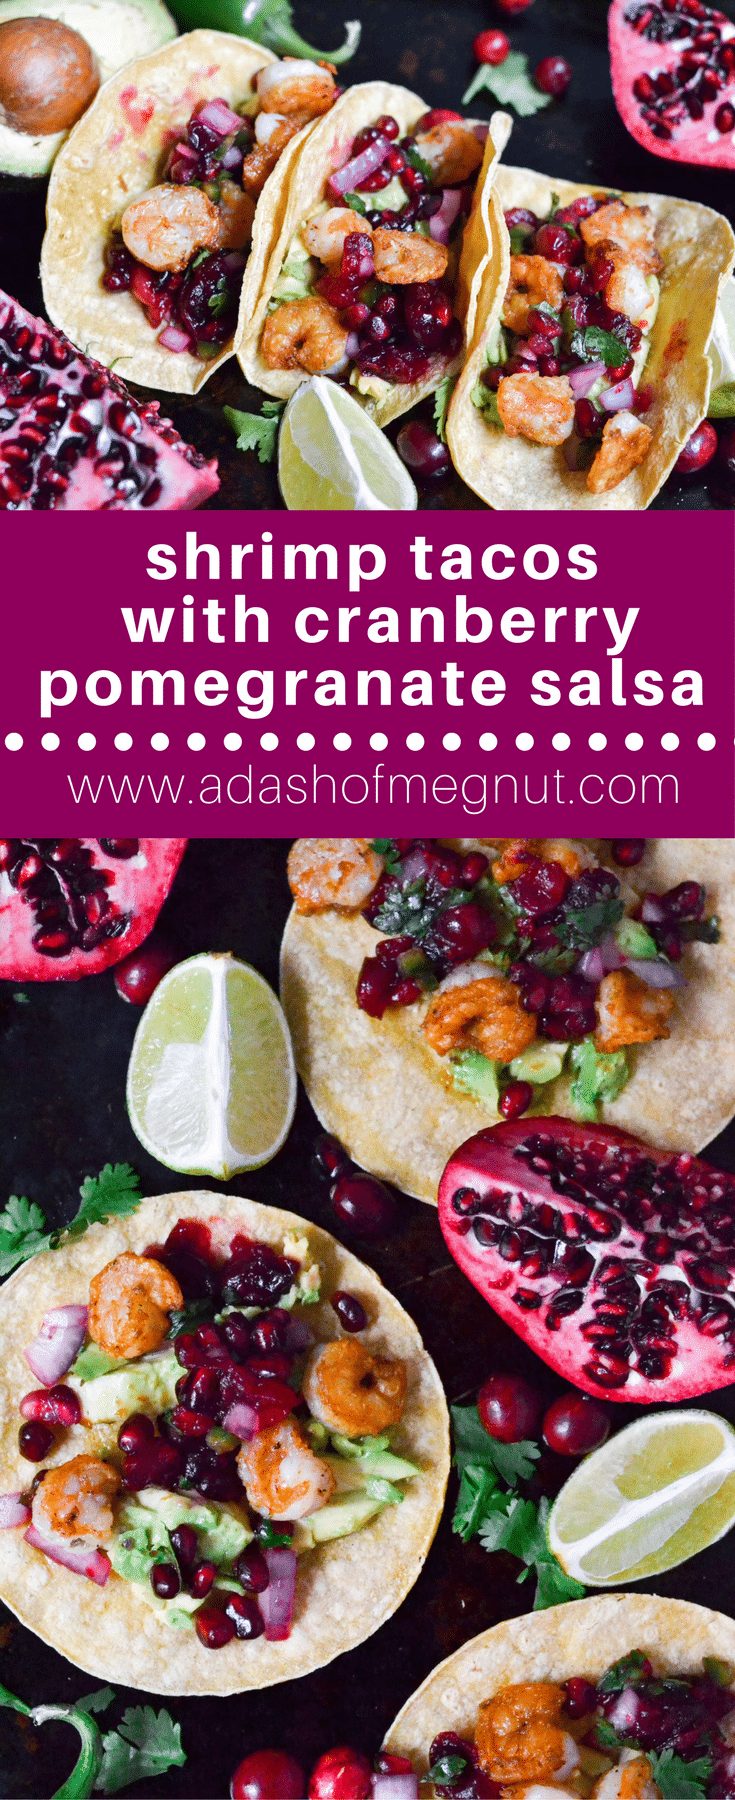 These shrimp tacos with cranberry pomegranate salsa are the ultimate gluten-free and dairy-free weeknight dinner! They're on the table in under 30 minutes! #tacotuesday #glutenfree #dairyfree